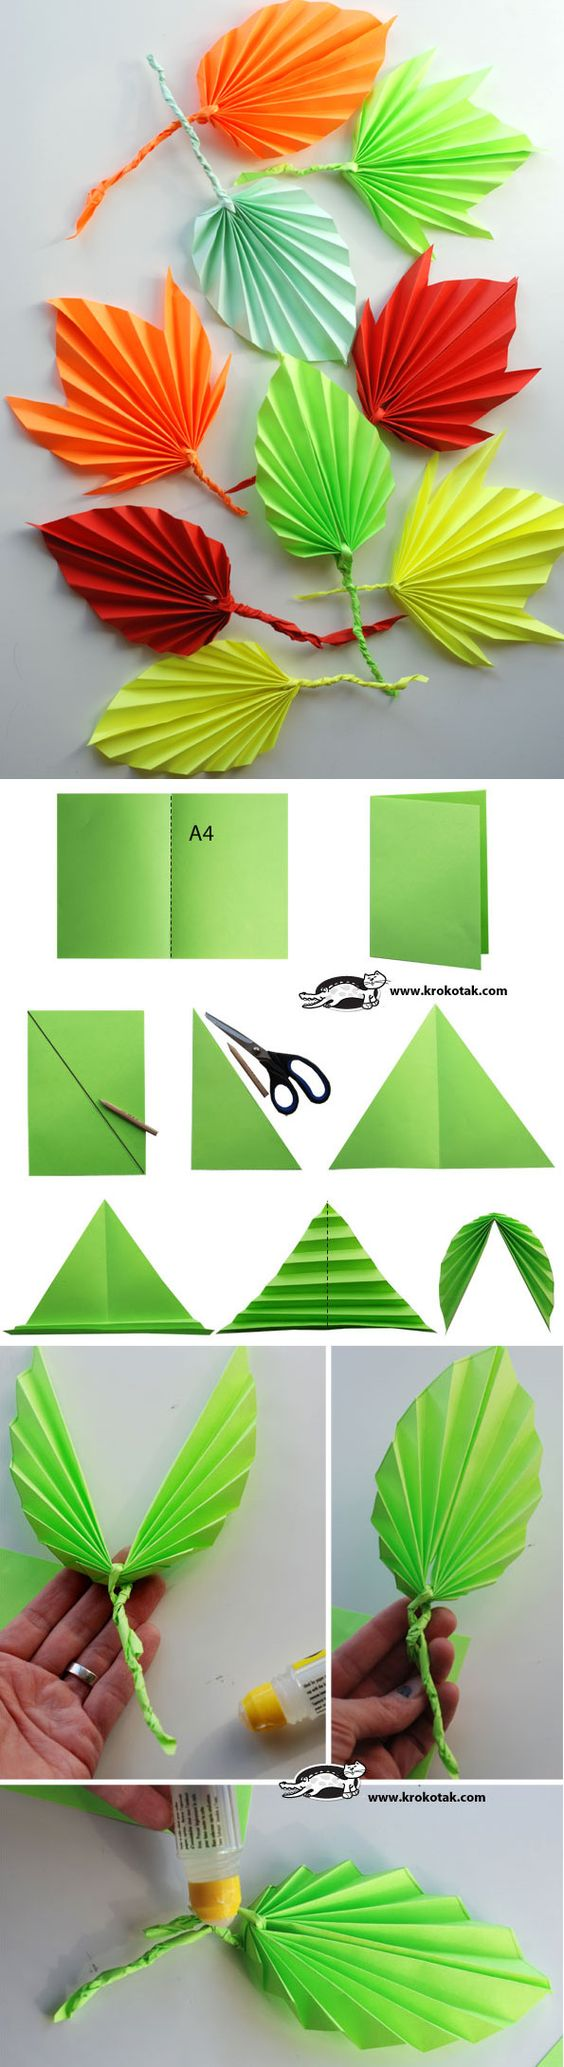 Manualidades De Papel Para Ninos Ideas Faciles